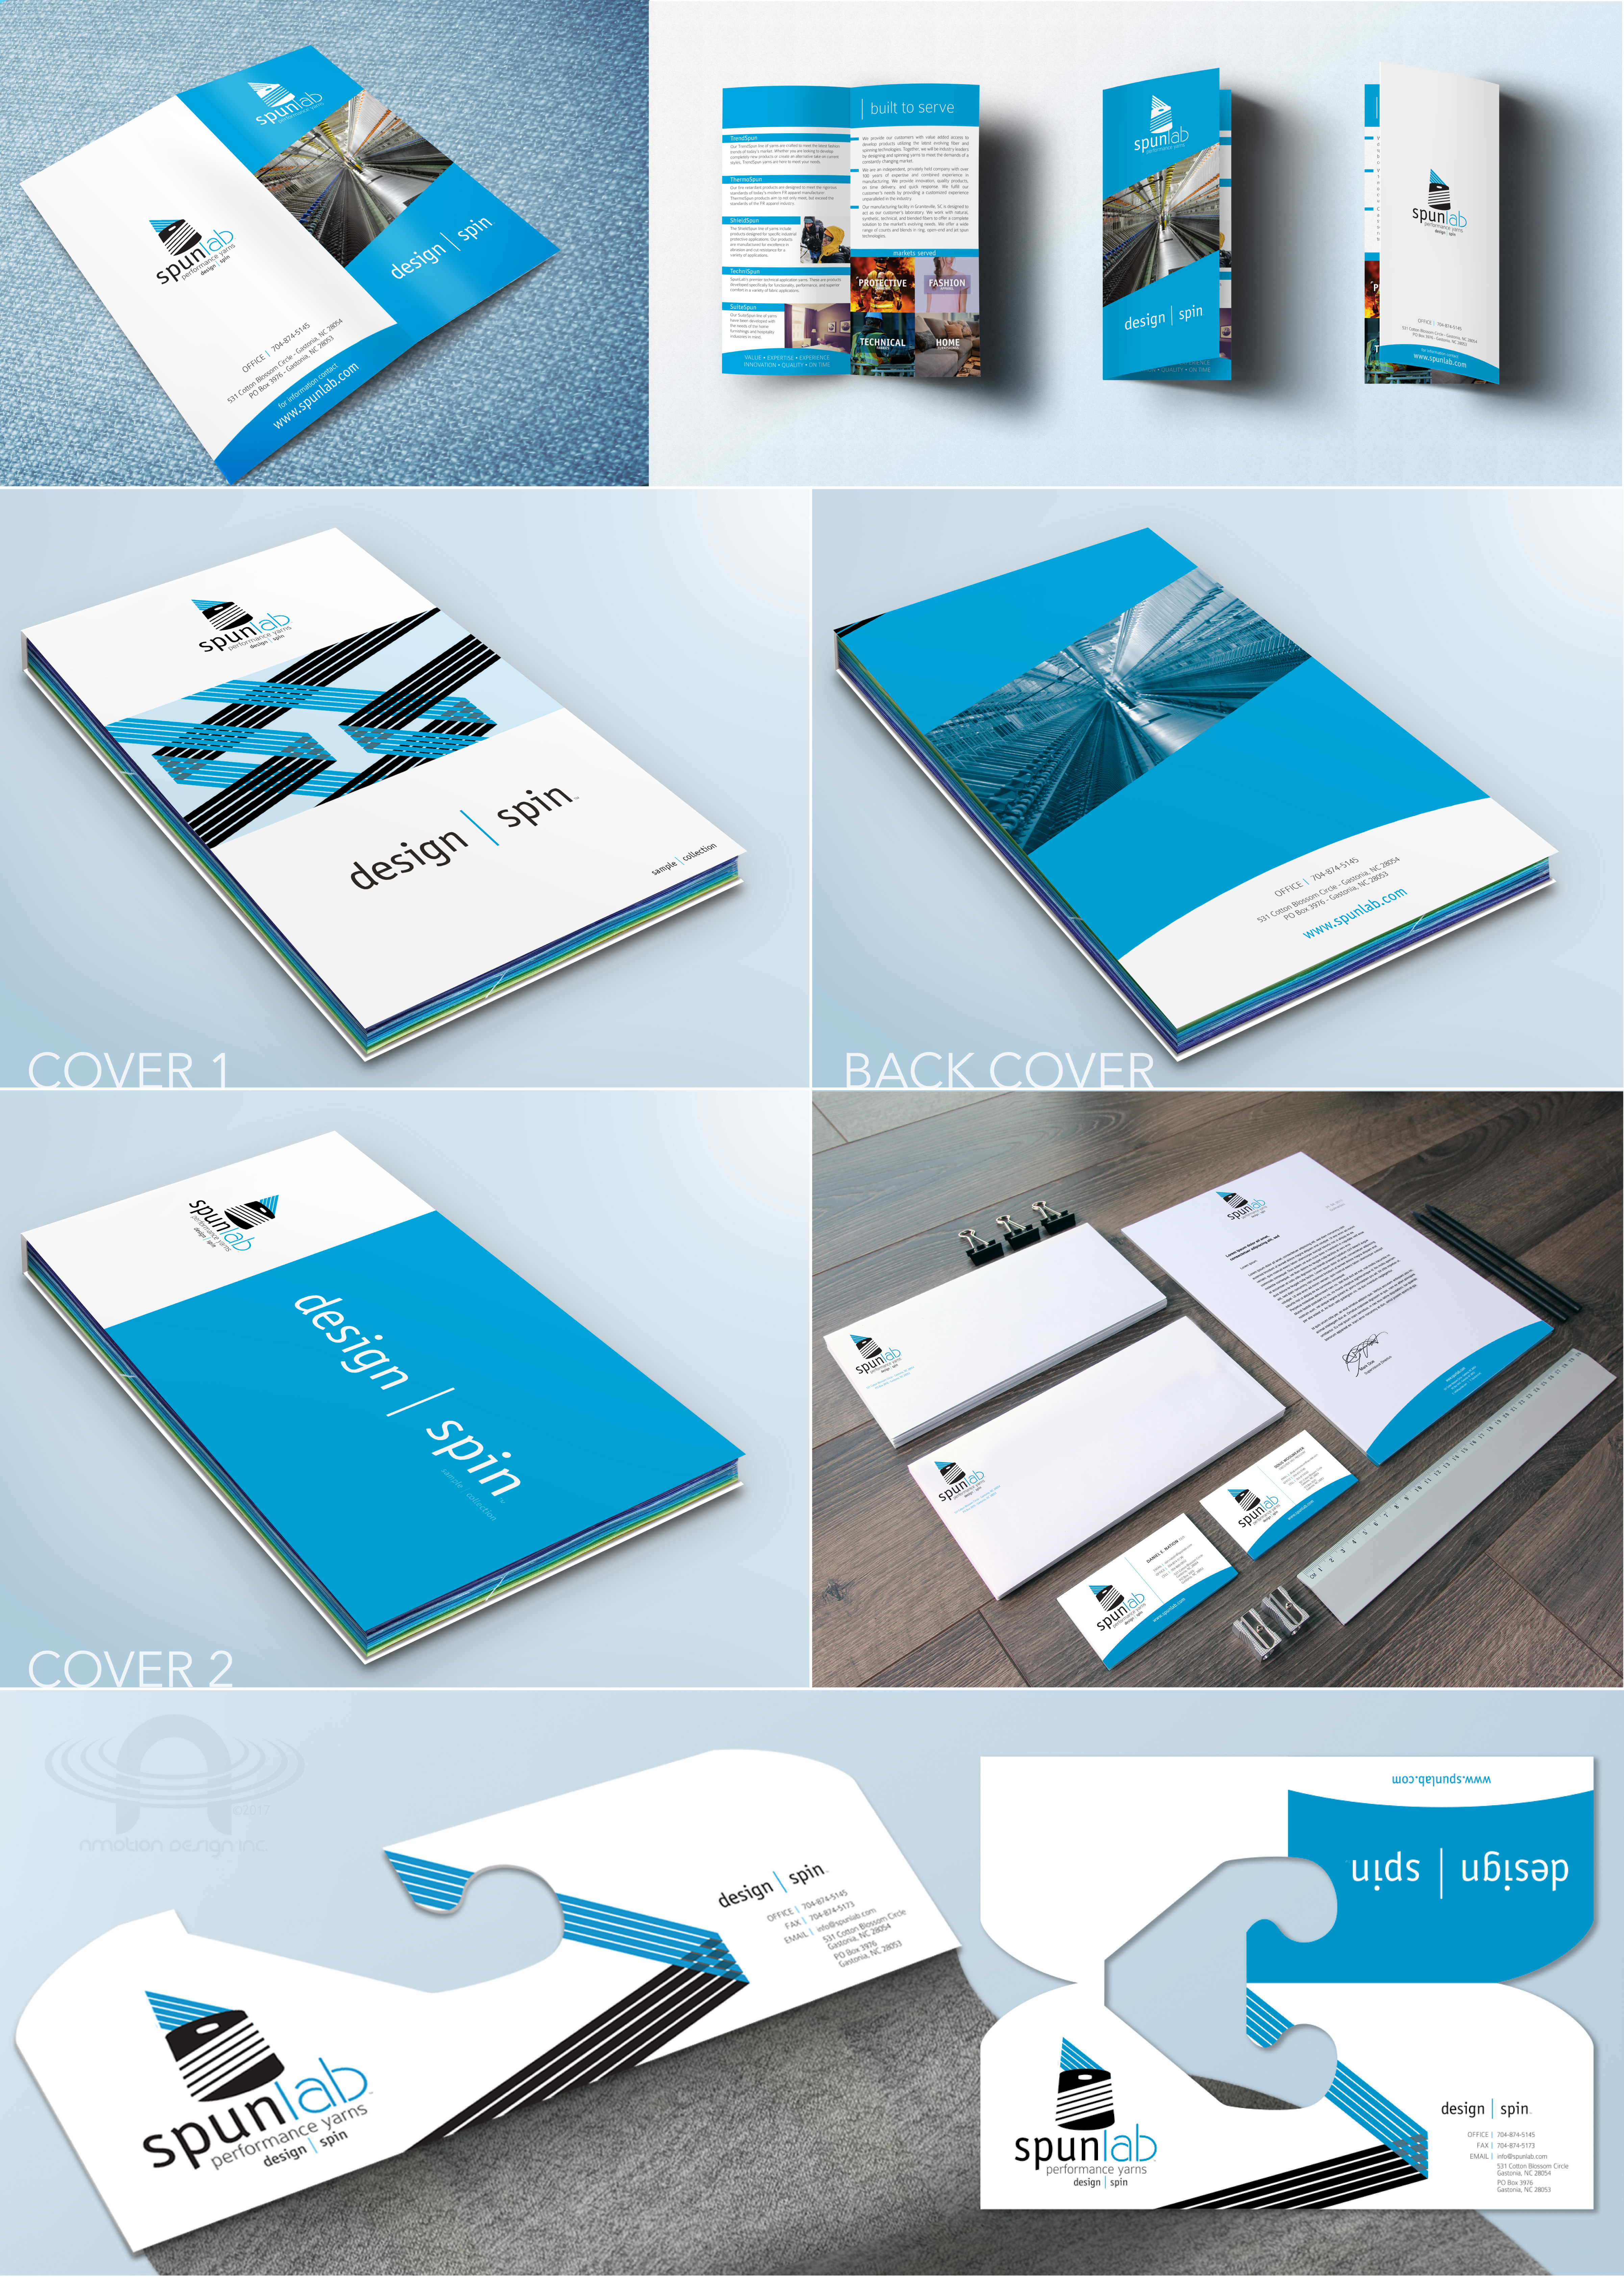 SPUNLAB FULL BRANDING AND SALES PACKAGE